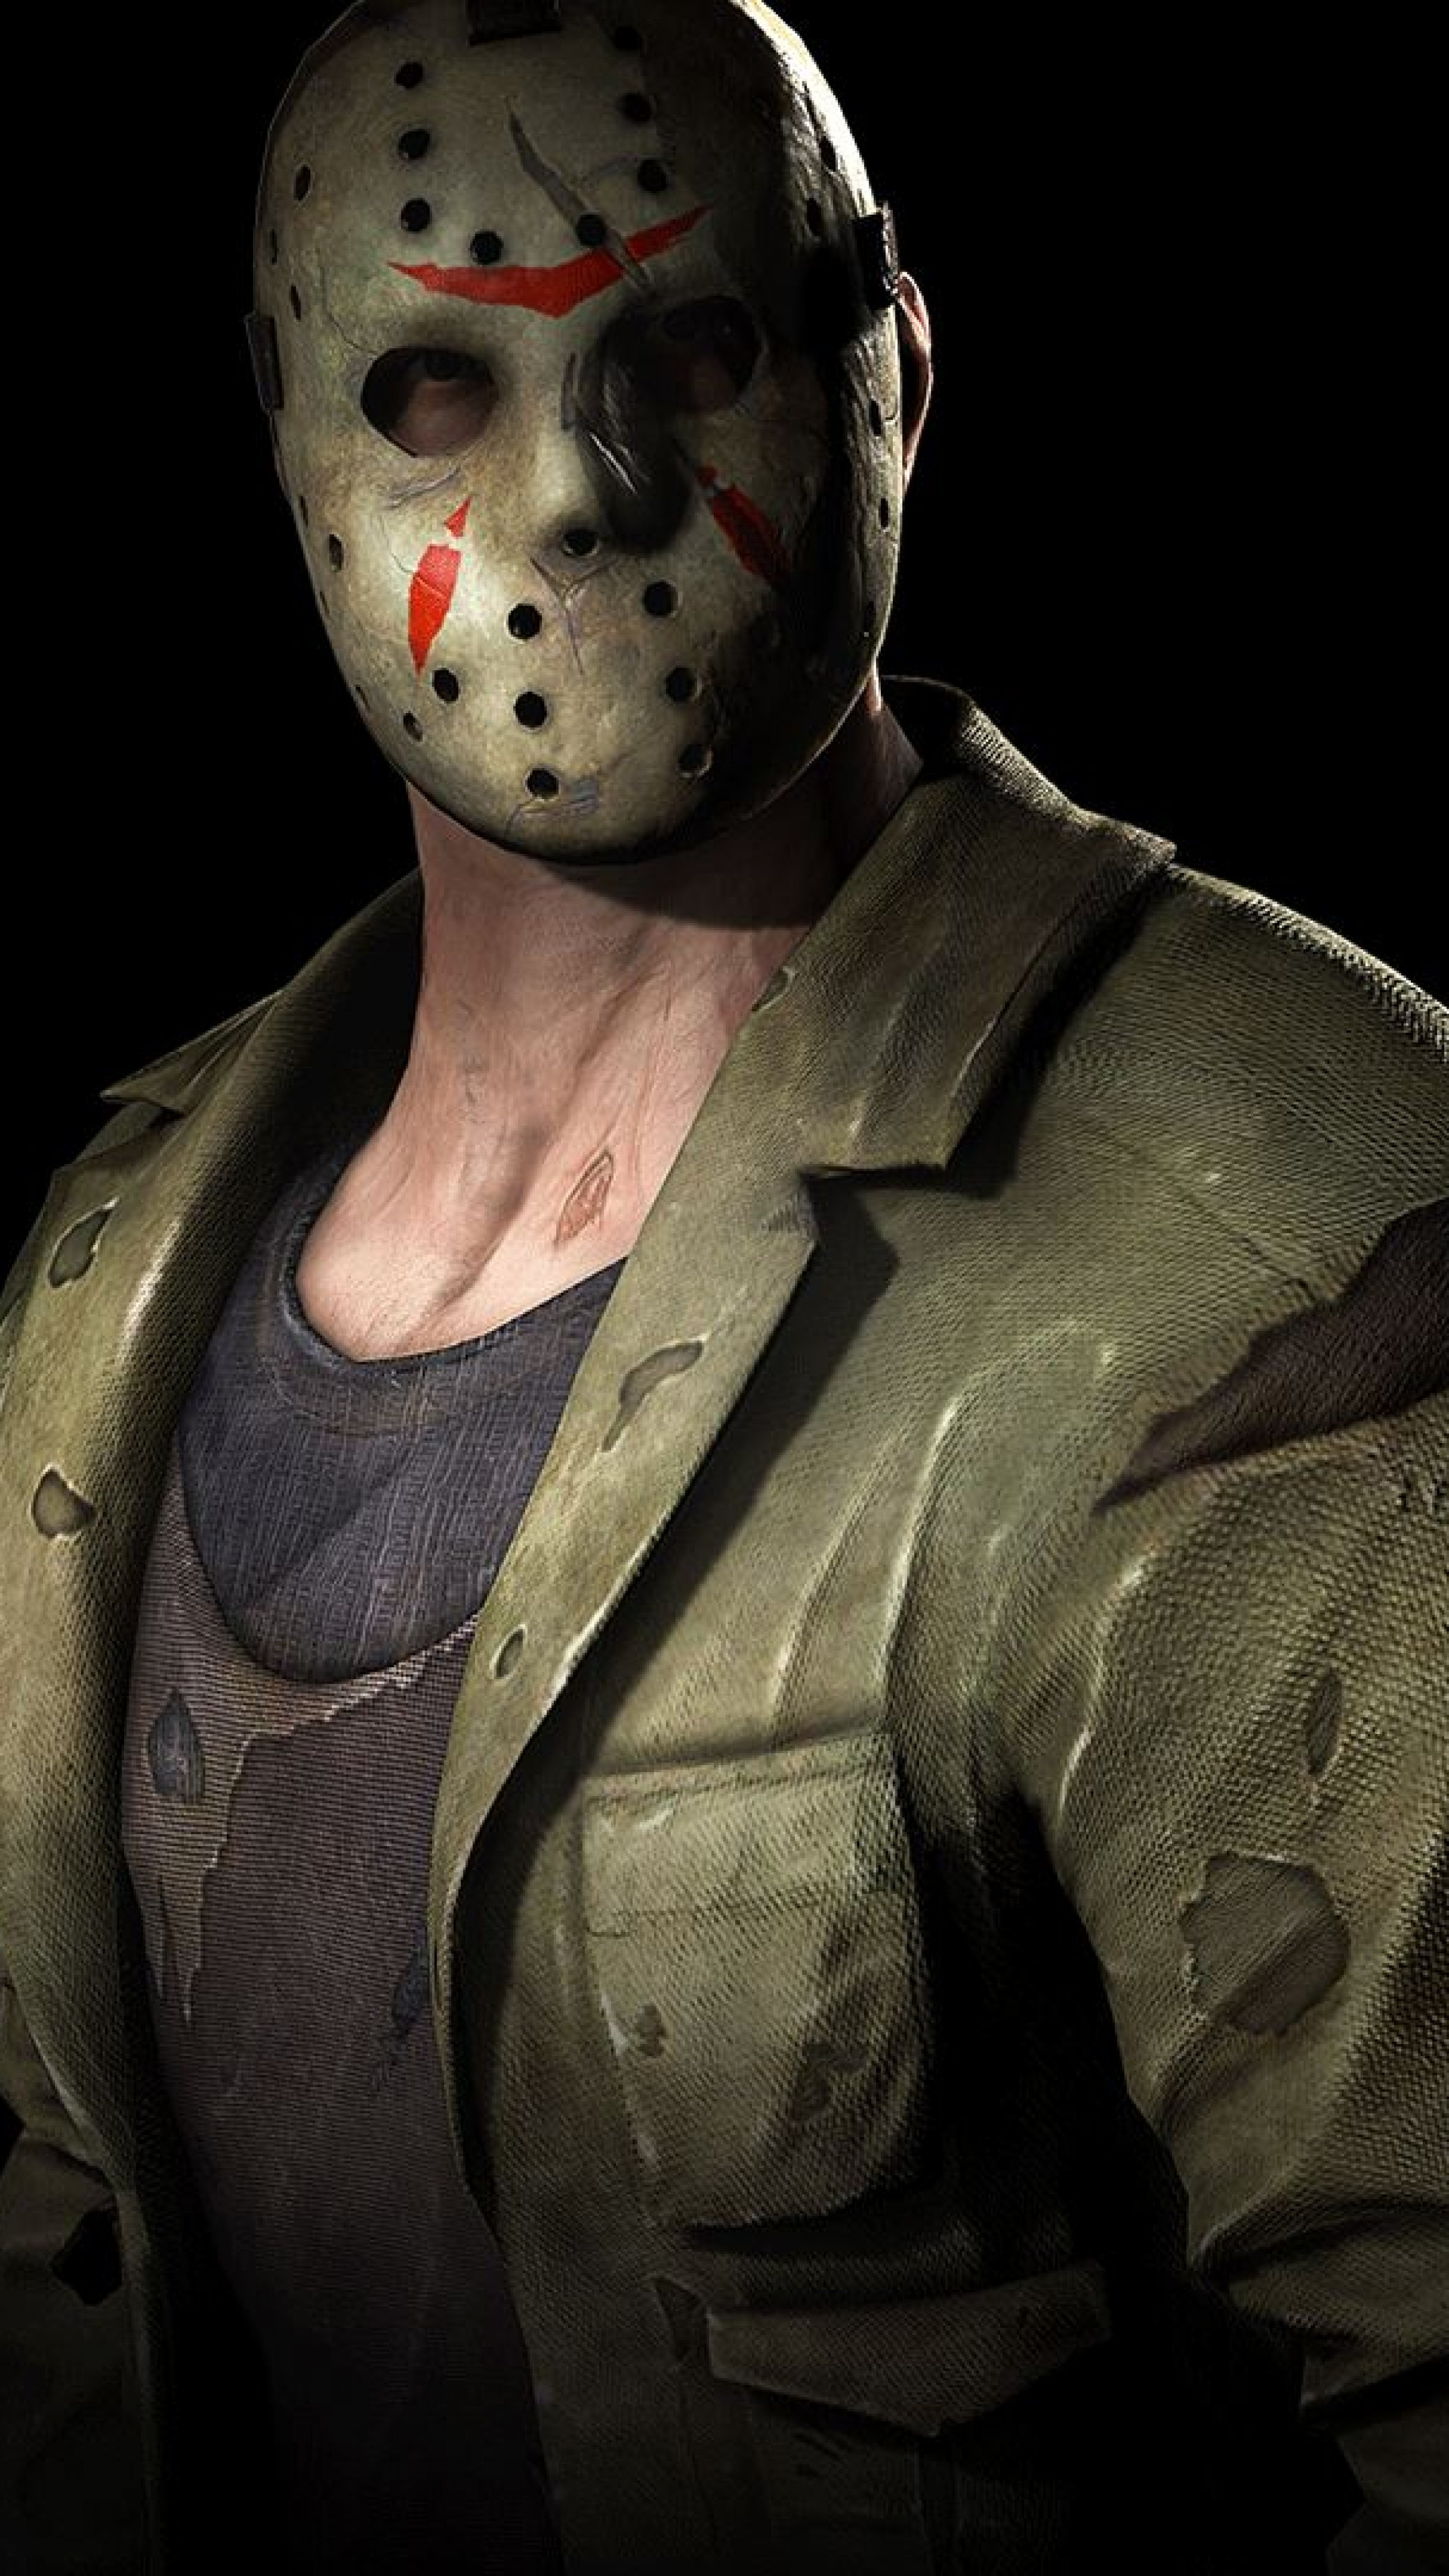 Jason Voorhees Friday the 13th Wallpapers (71+ pictures)